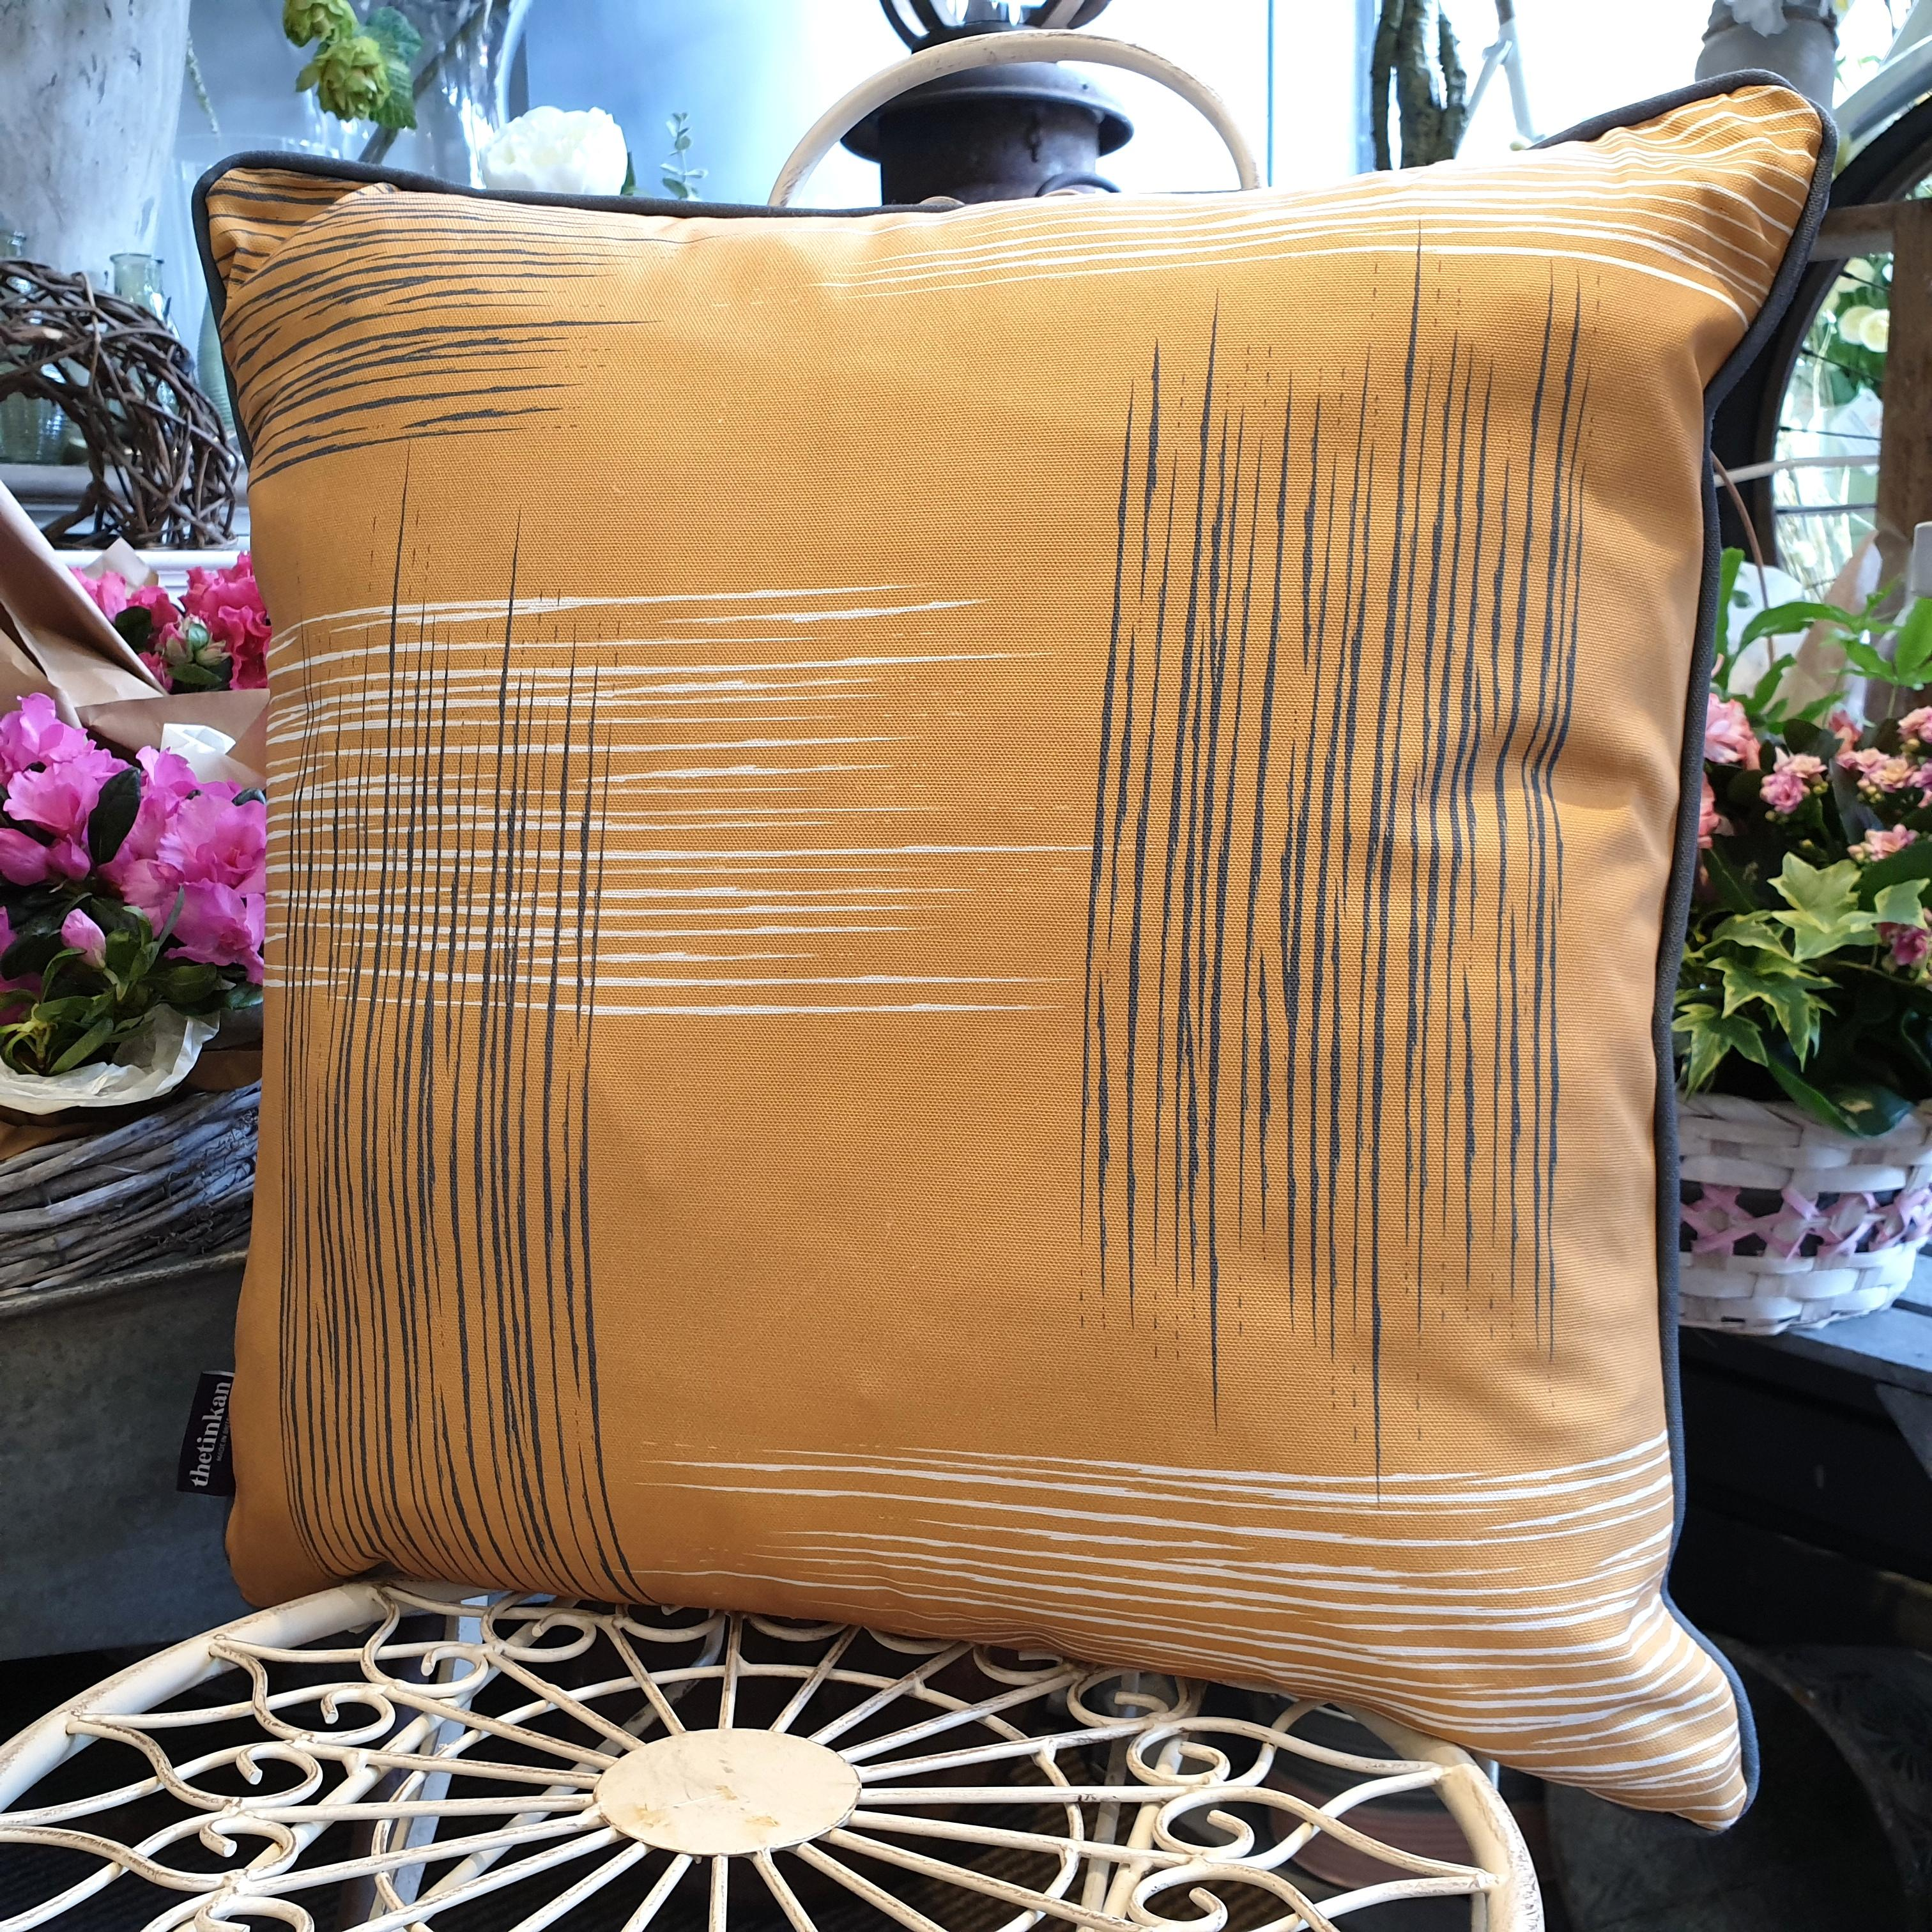 Double-sided mustard yellow 51cm square retro themed cushion with artistic grey and white shards and grey handcrafted piping designed by thetinkan. Available with an optional luxury cushion inner pad. VIEW PRODUCT >>